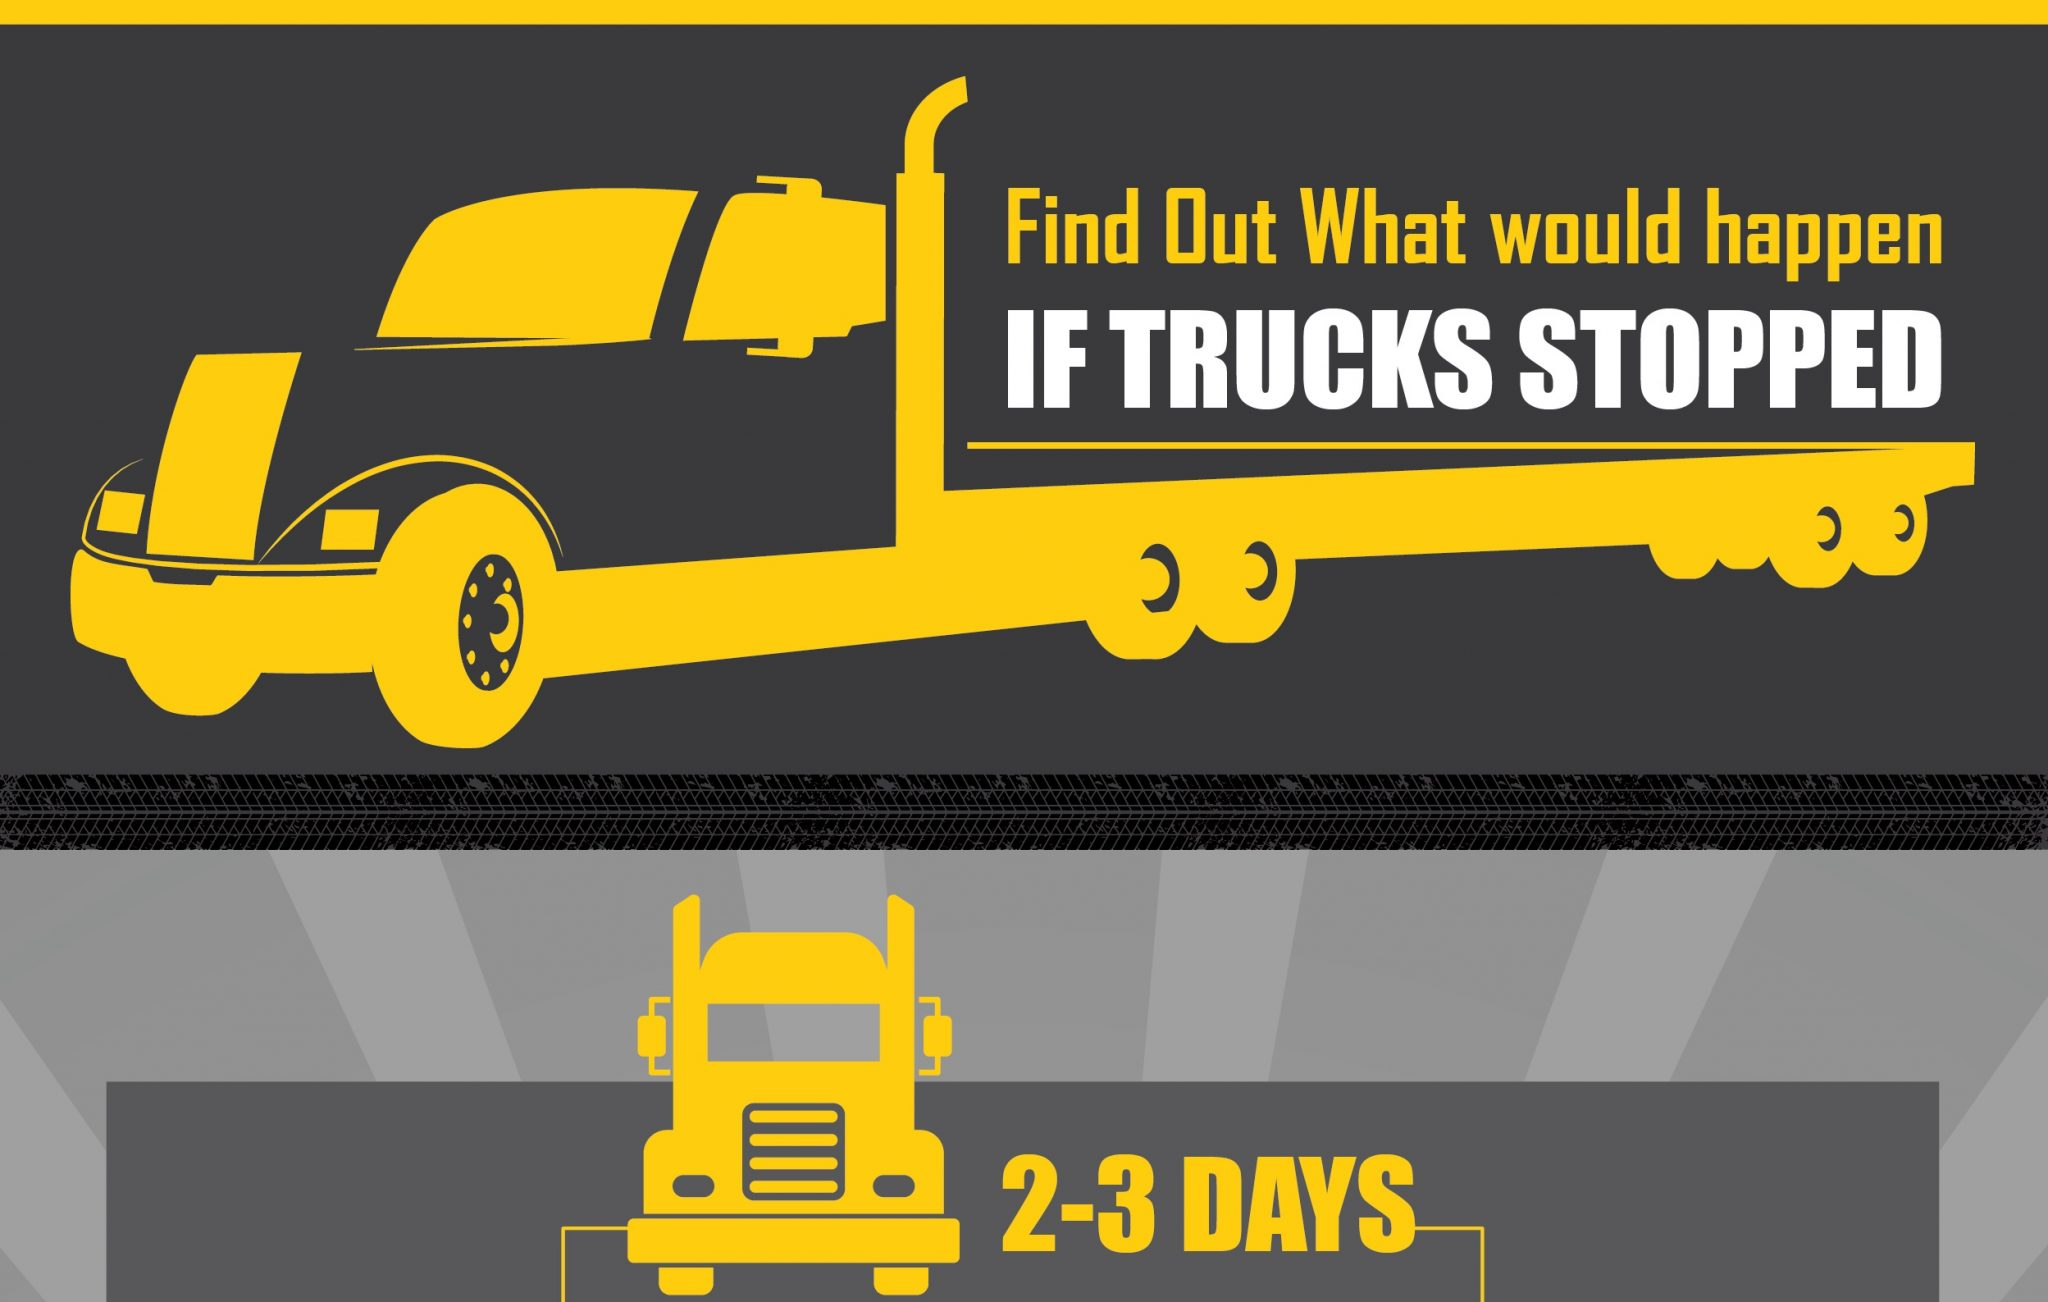 INFOGRAPHIC: Find Out What Would Happen If Trucks Stopped